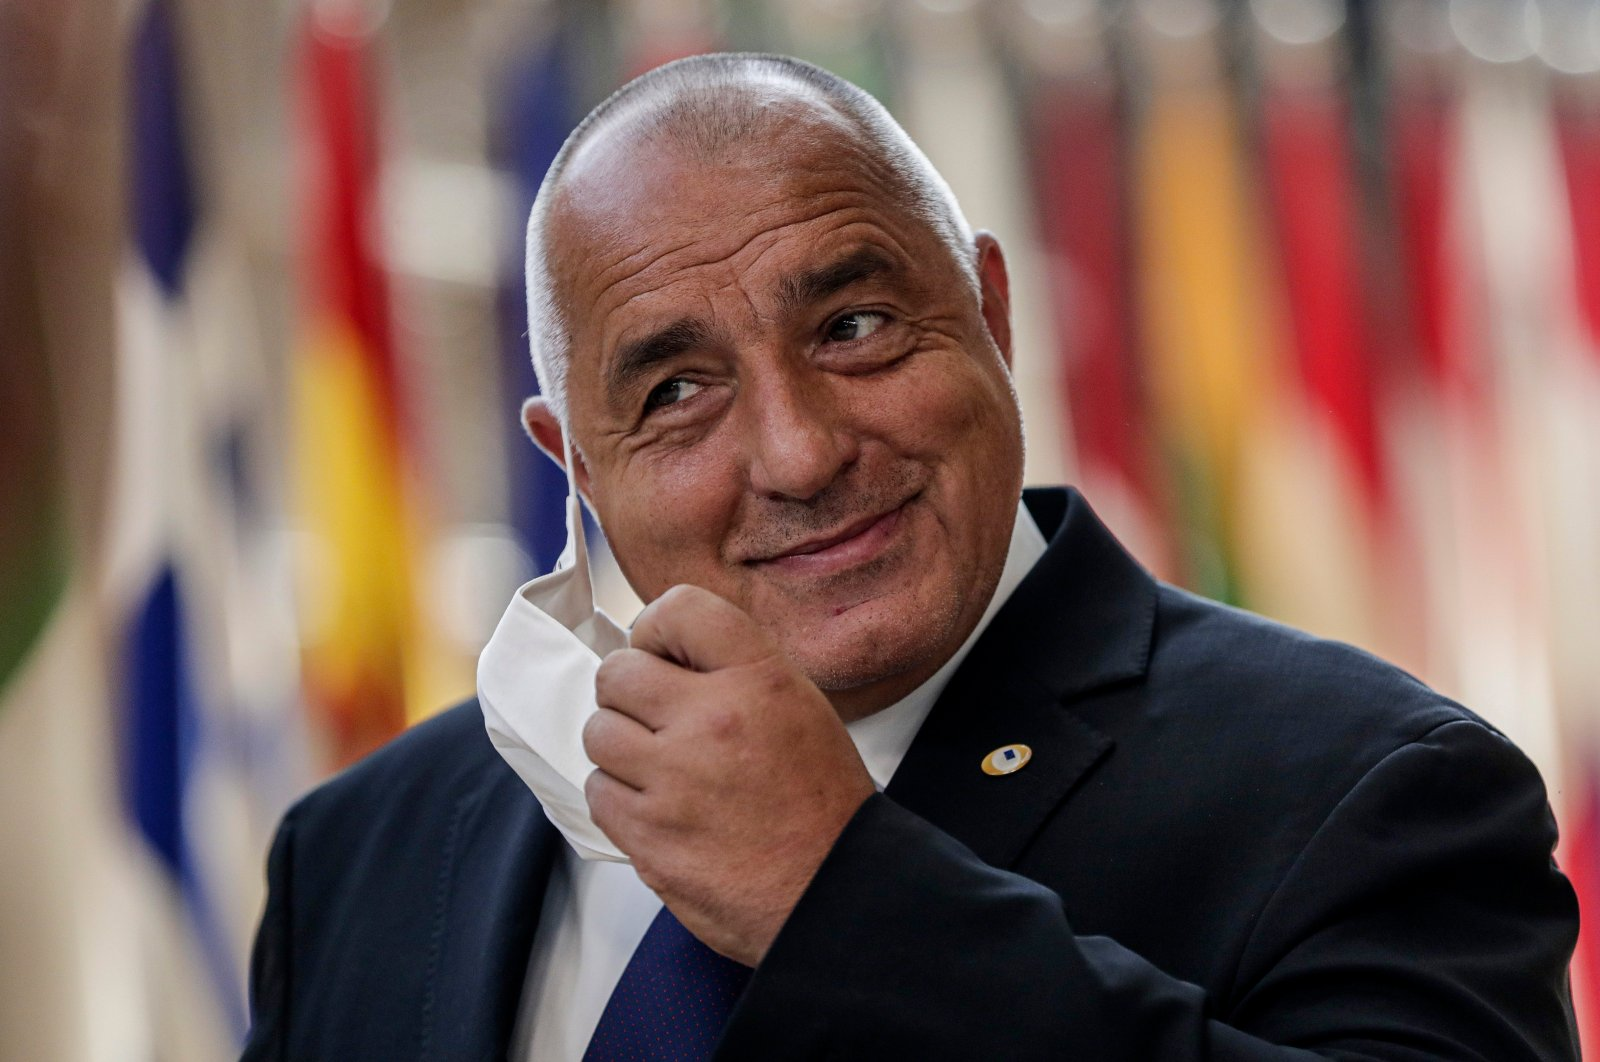 Bulgaria's Prime Minister Boyko Borissov takes off his protective face mask as he arrives for an EU summit at the European Council building in Brussels, July 18, 2020. (AP Photo)